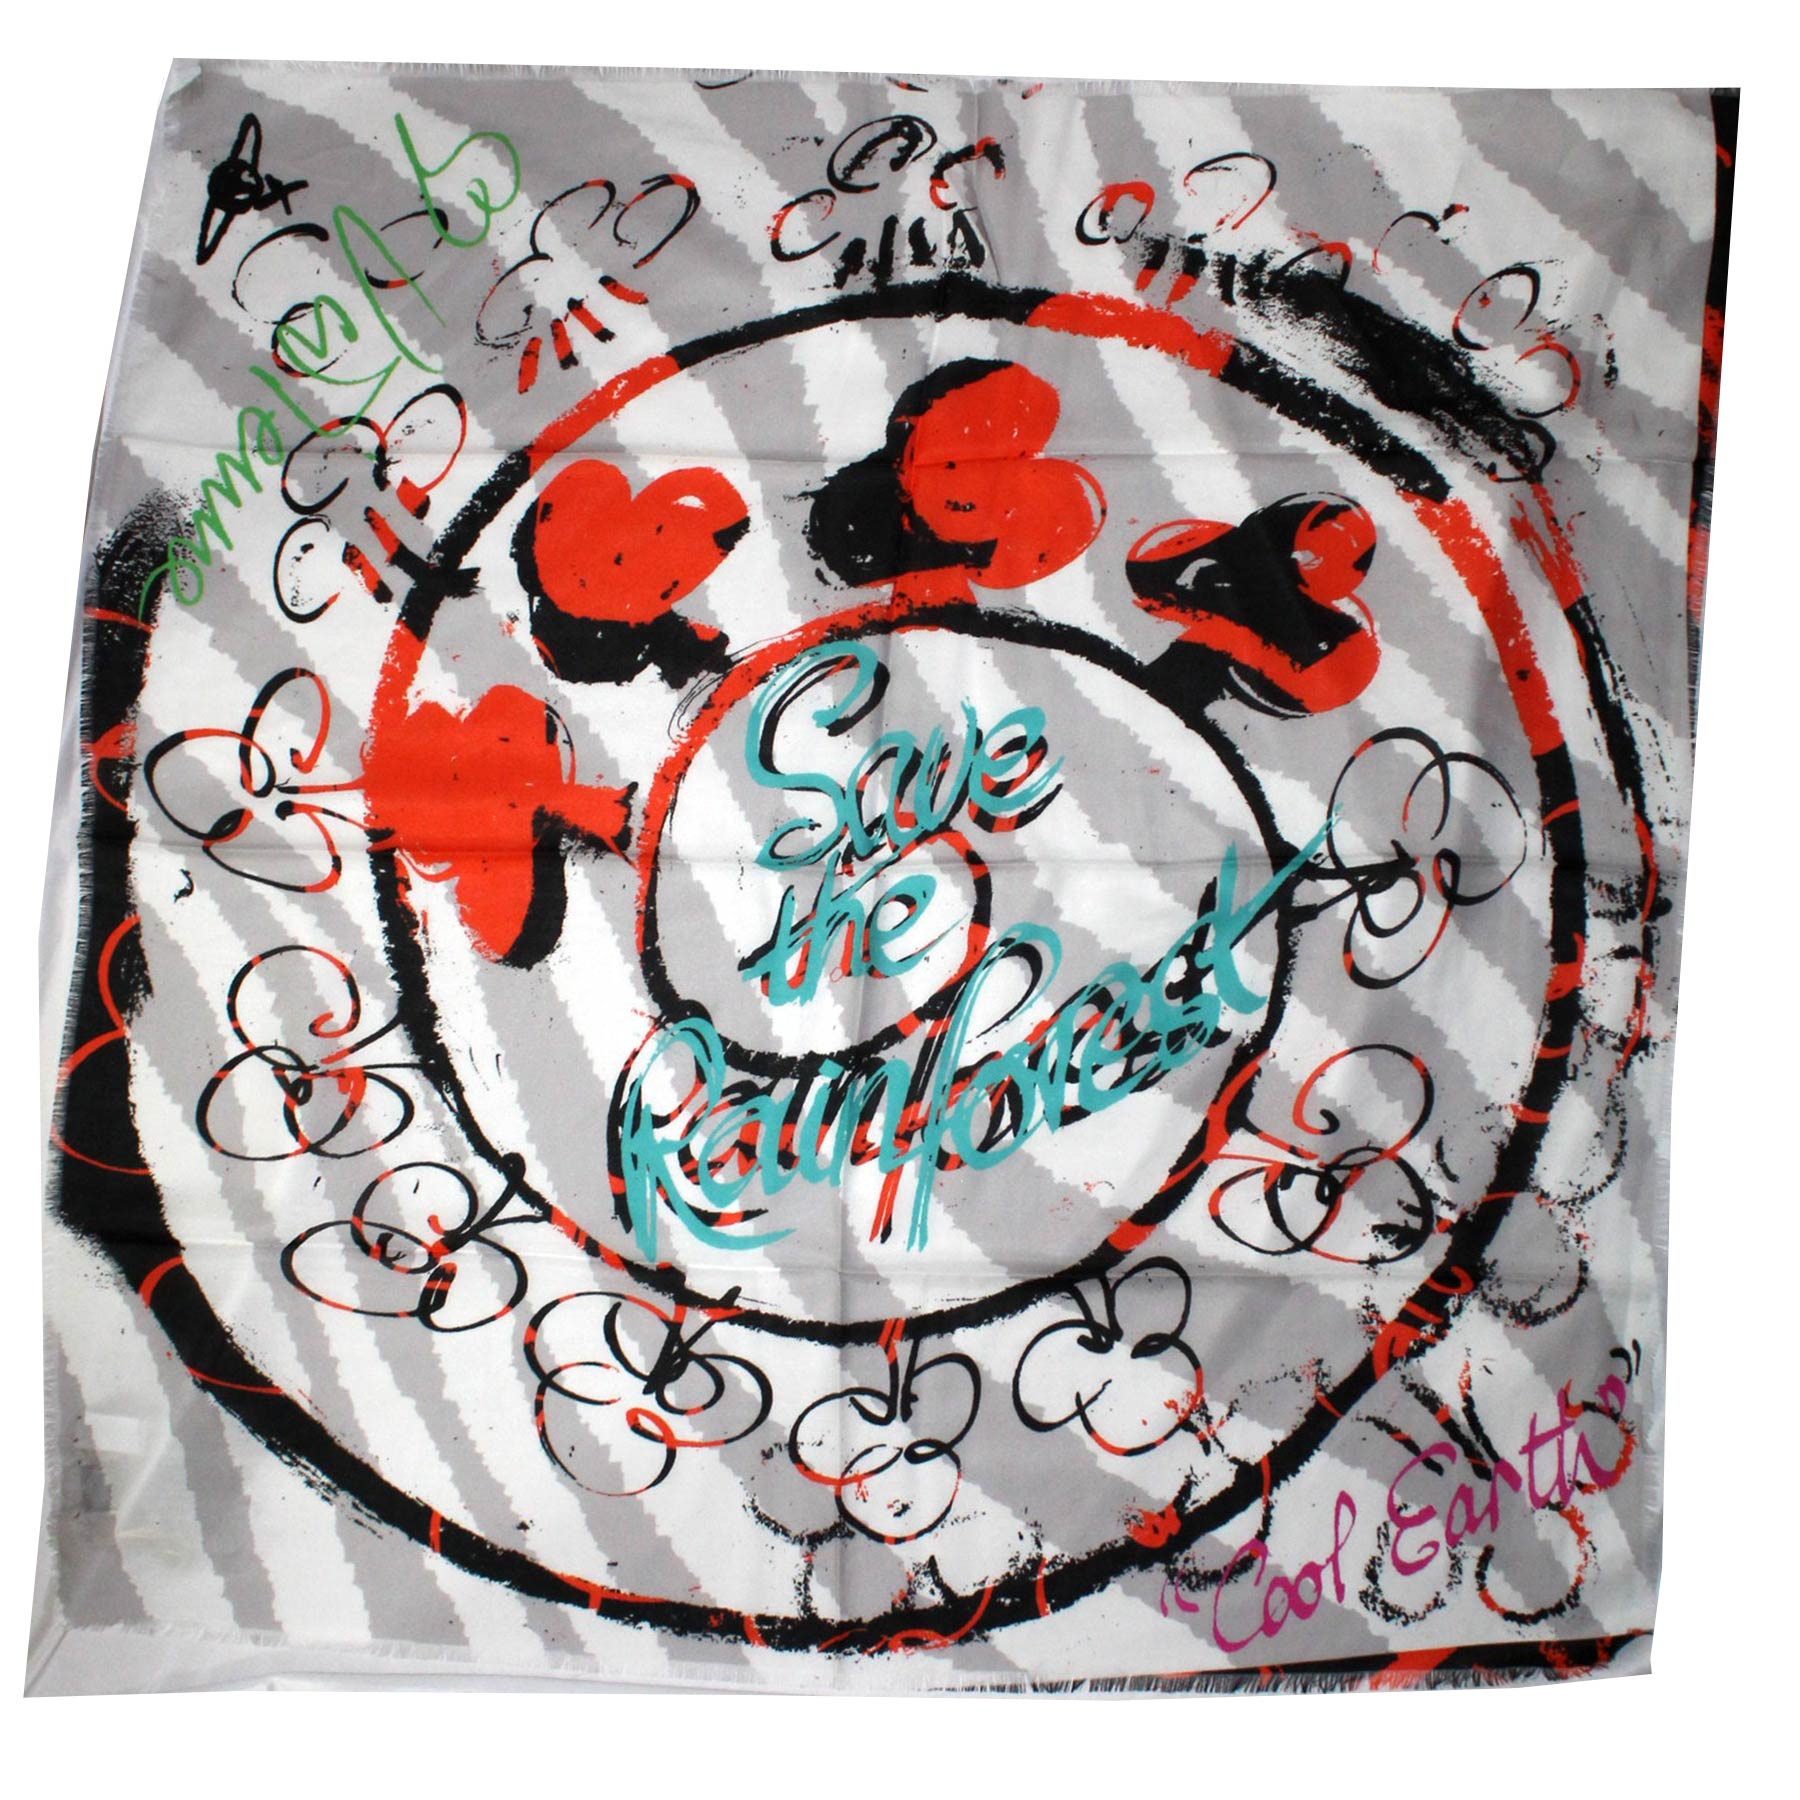 Vivienne Westwood Scarf Save The Rainforest - Large Square Scarf SALE